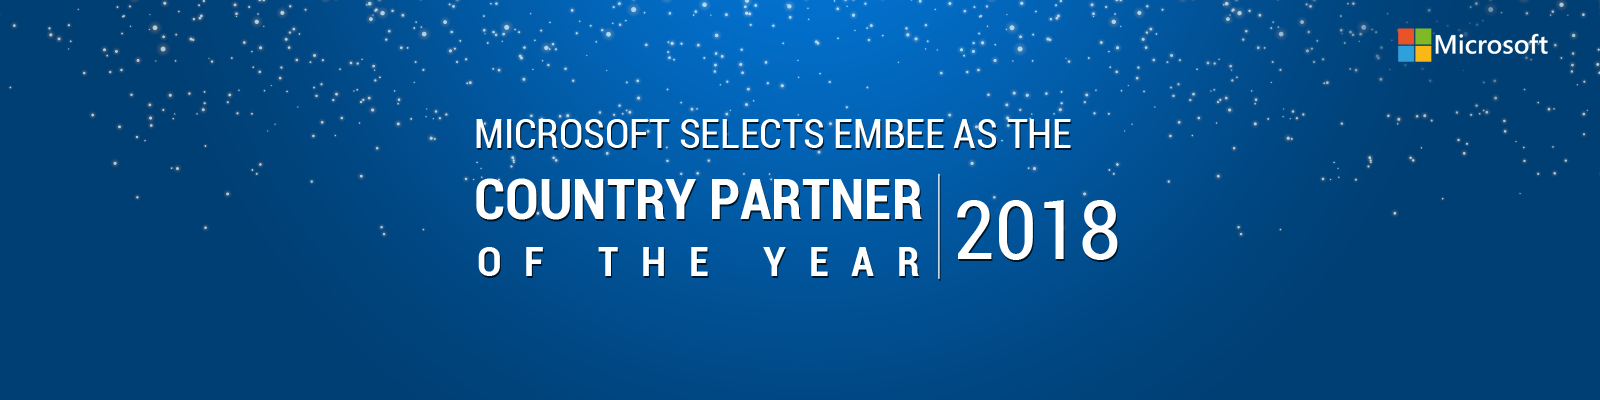 Microsoft Country Partner 2018.